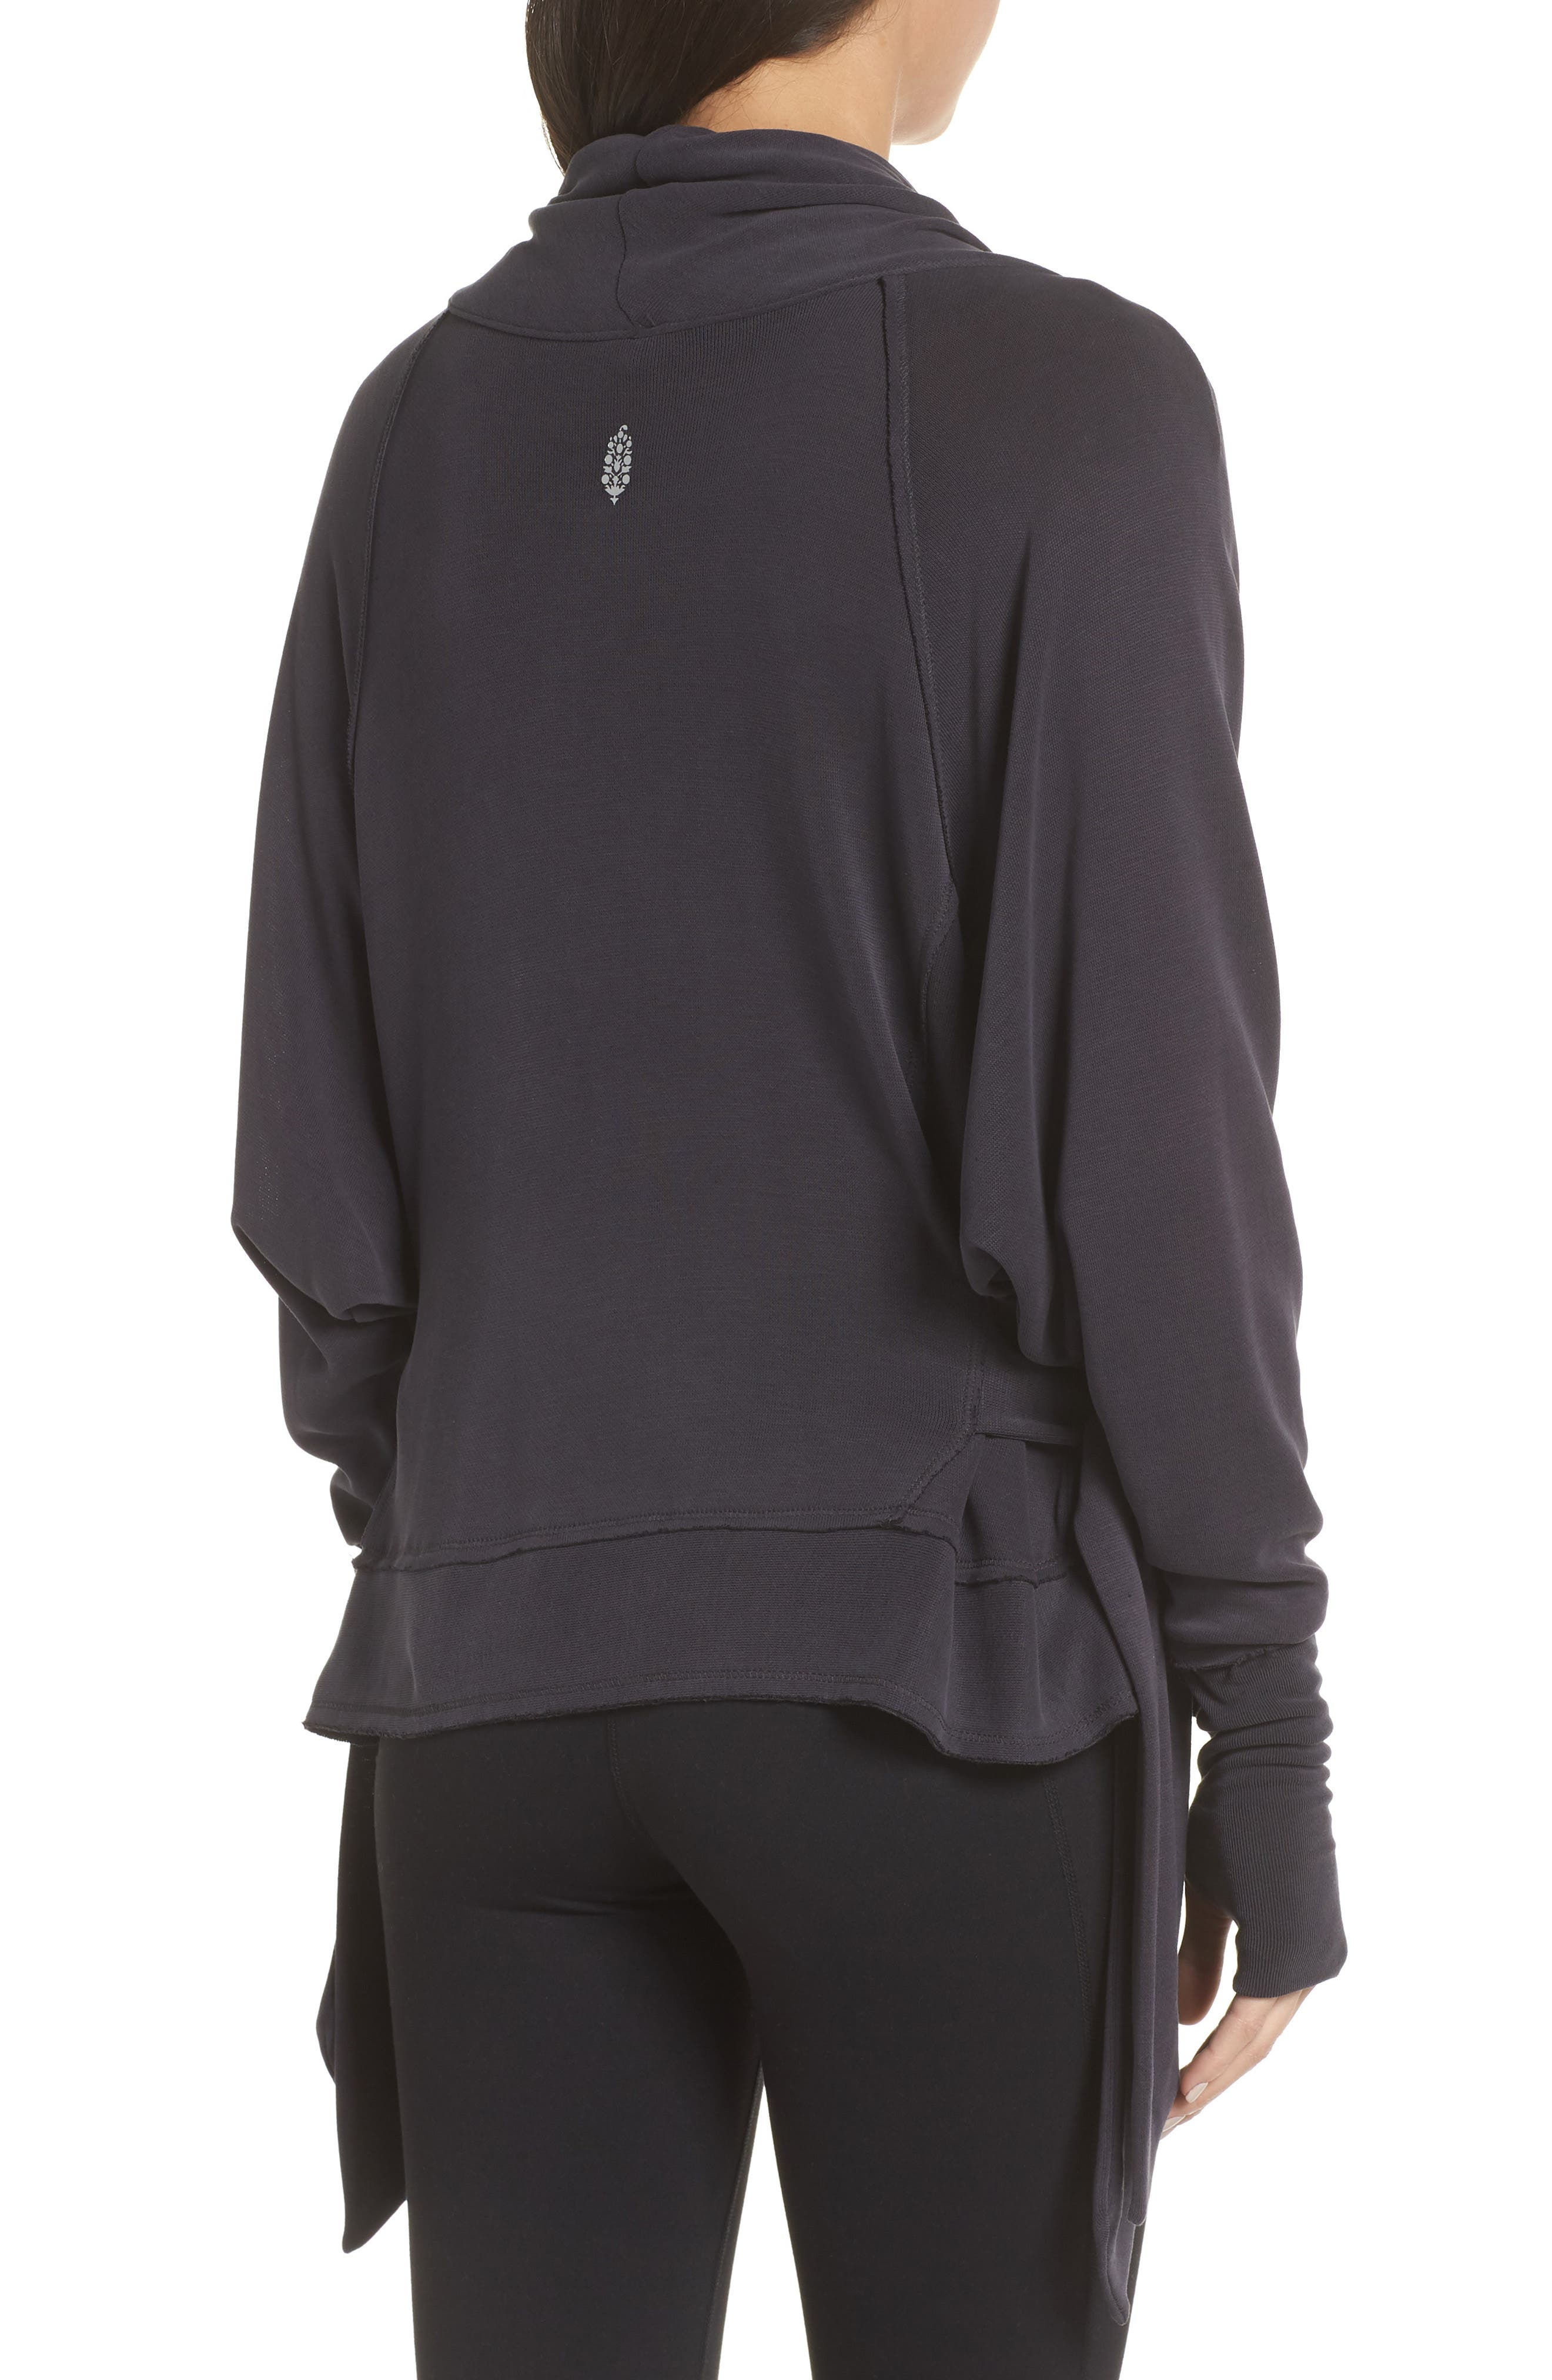 Free People FP Movement Sweet Flow Pullover Sweater,                             Alternate thumbnail 2, color,                             BLACK